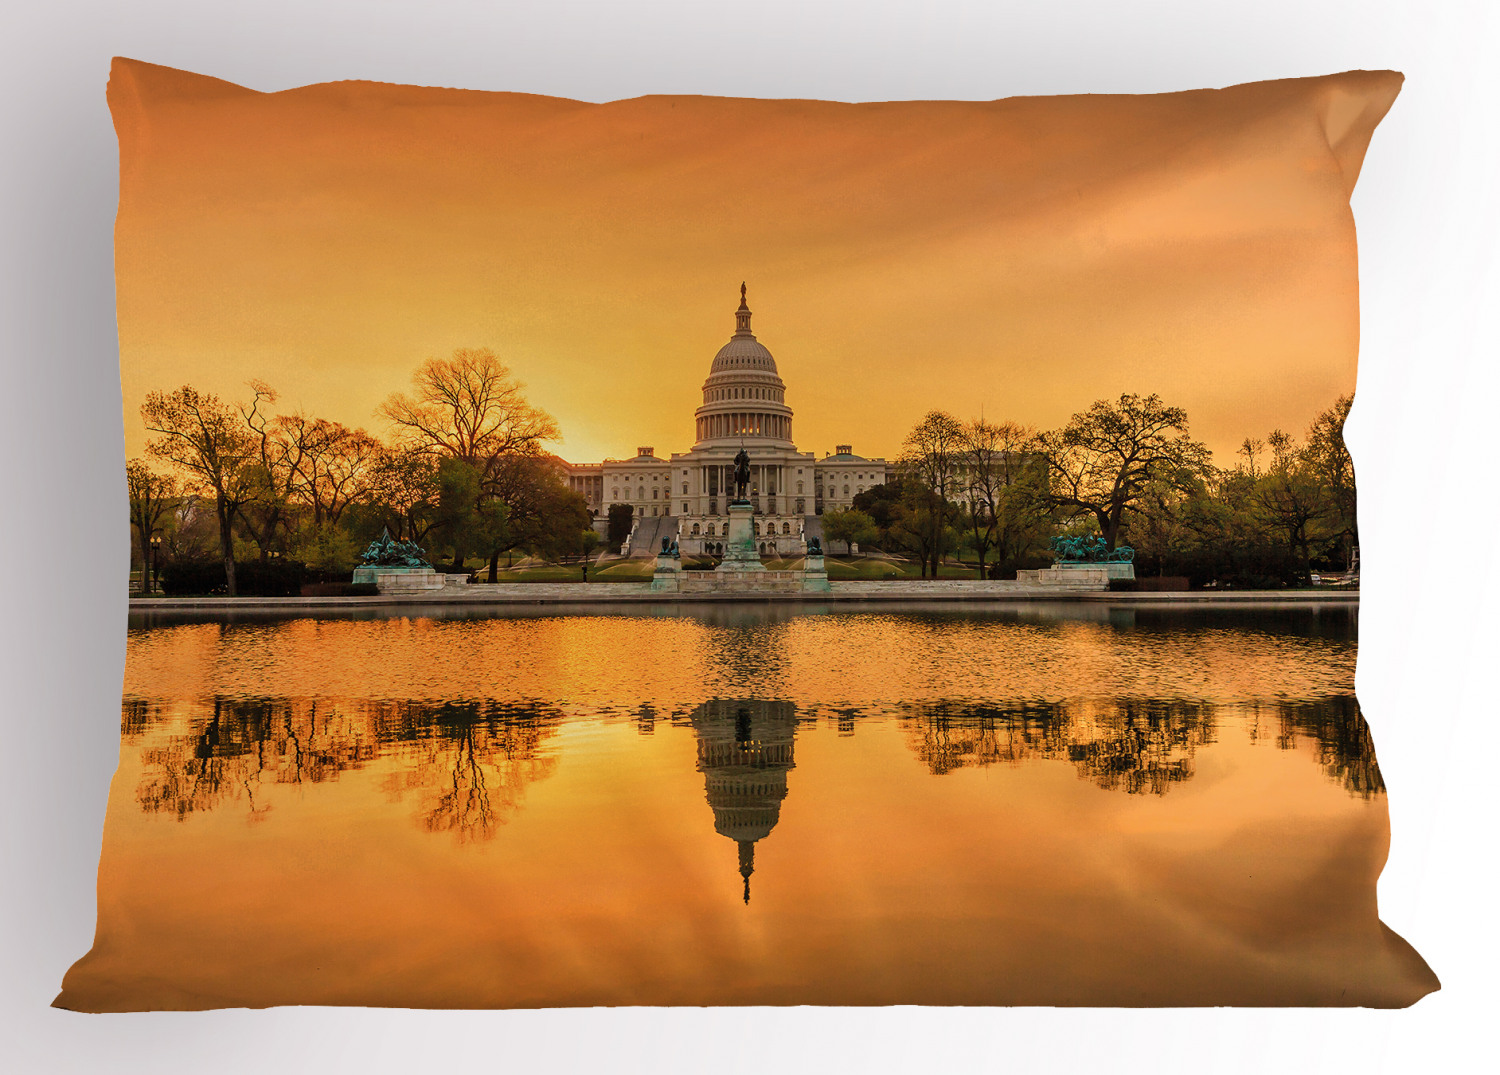 United States Pillow Sham Decorative Pillowcase 3 Sizes Bedroom Decor Ambesonne